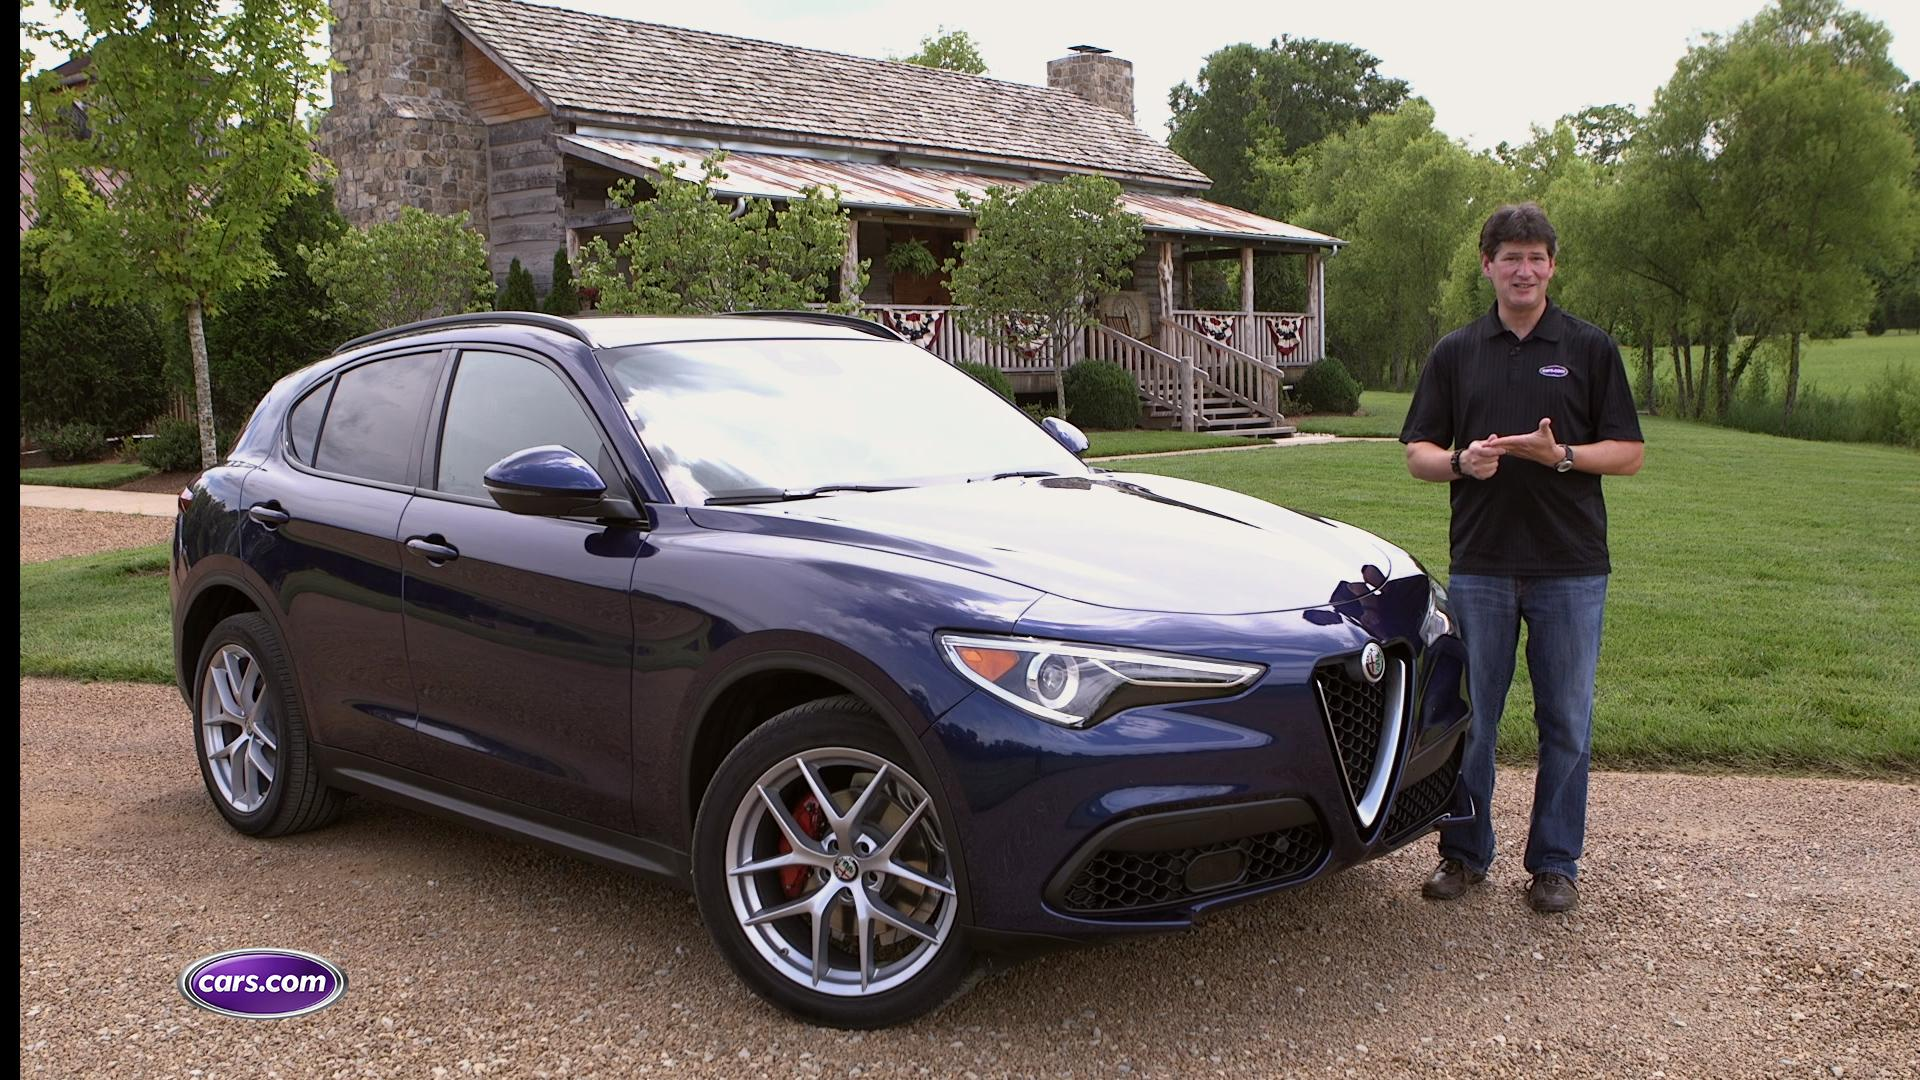 Video: 2018 Alfa Romeo Stelvio Review